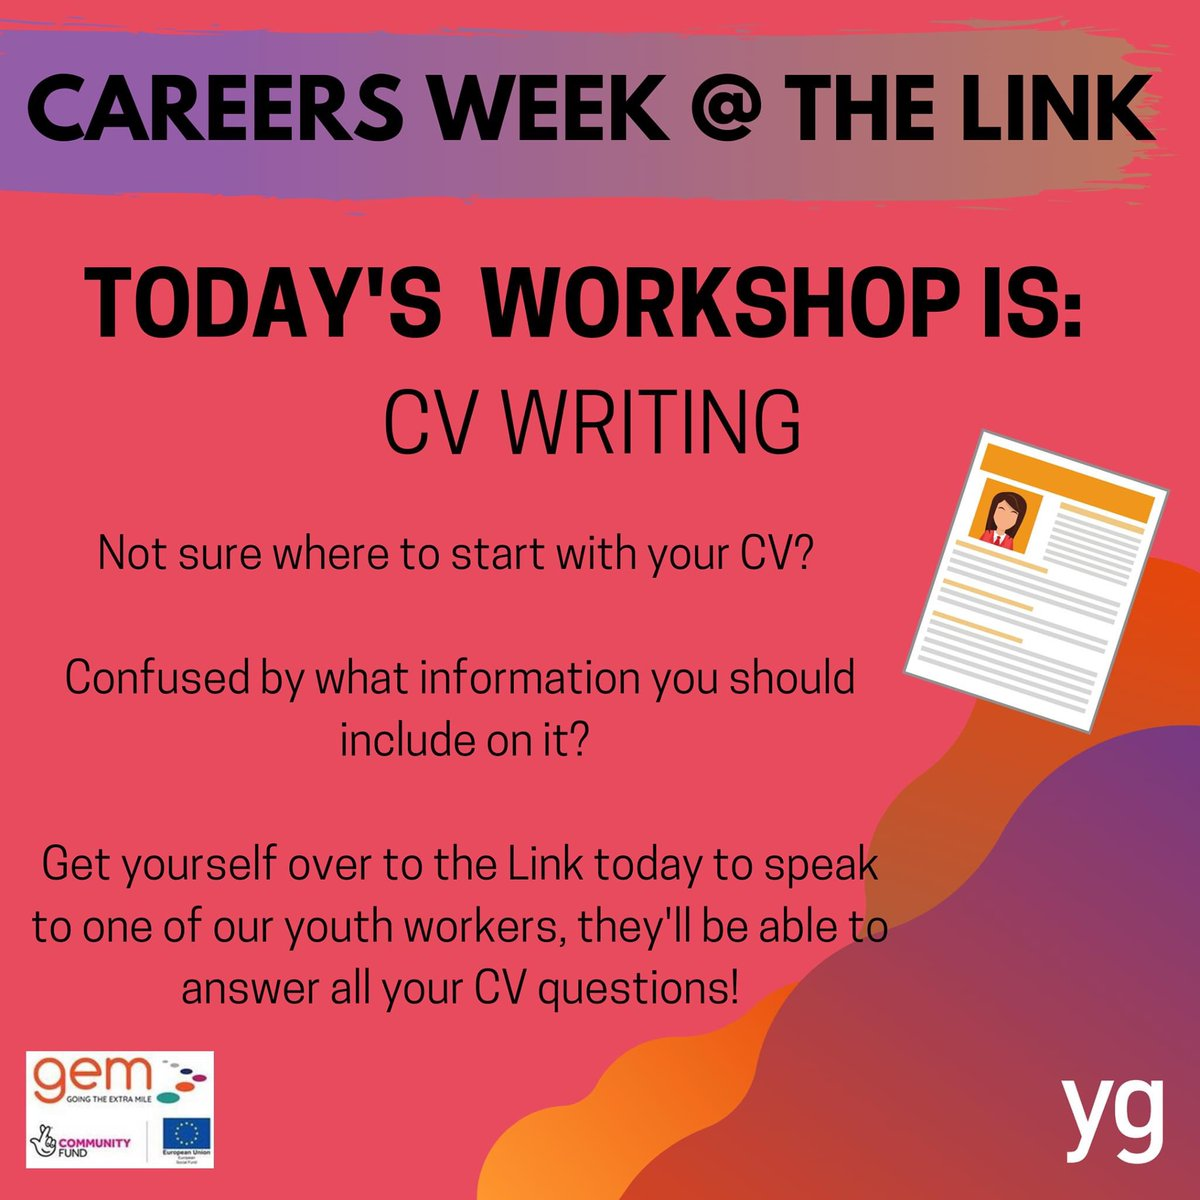 🌟 CAREERS WEEK 🌟  Today's workshop is CV Writing ✏️  Our YG staff will be available today to help support you with any CV queries you might have, pop down to the Link between 11:00am - 1:00pm and 2:00pm - 4:00pm to speak with someone! 😄  See you later! 👋  #YG #CareersWeek https://t.co/JjJ5yxlggK